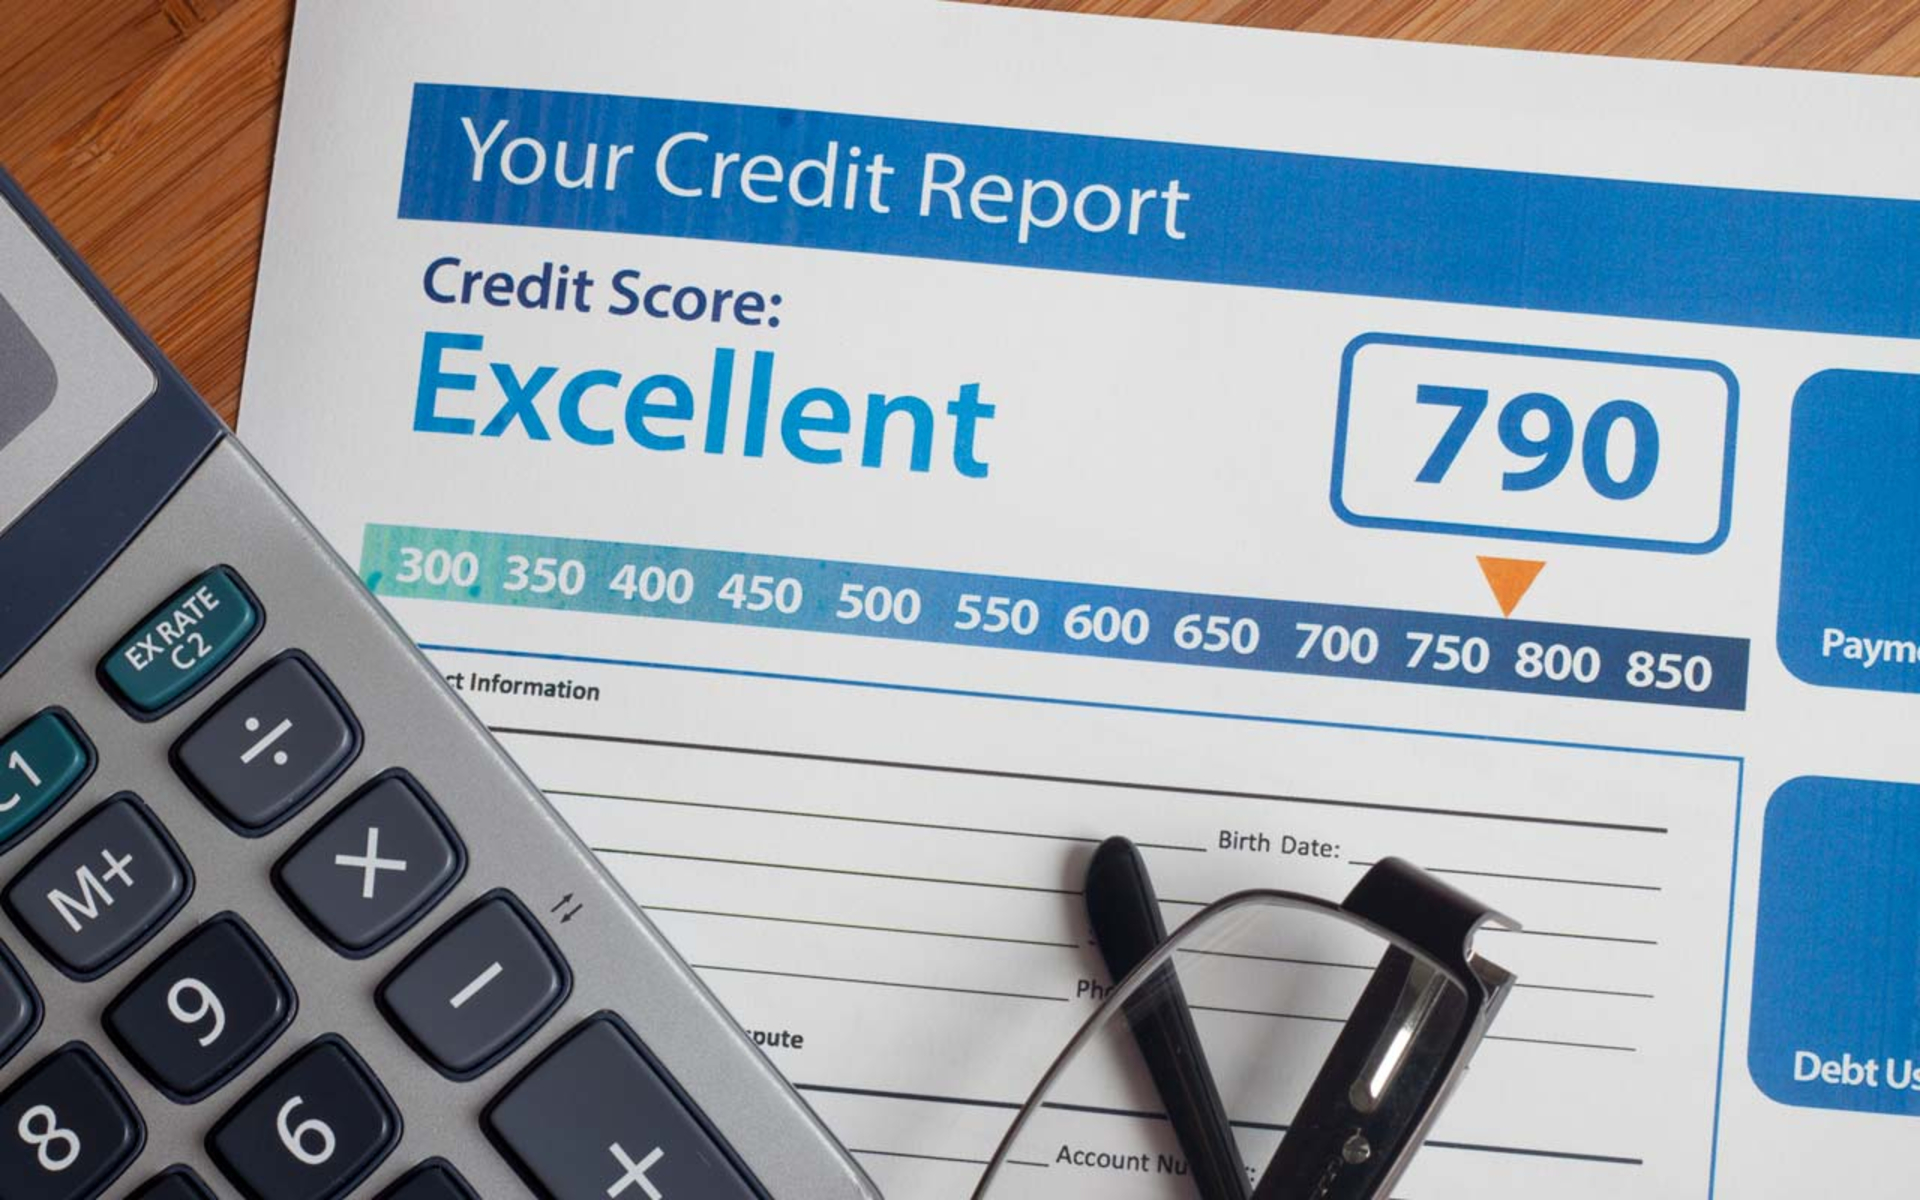 iBlogs - External Factors that Influence the Outcome of a Credit Report